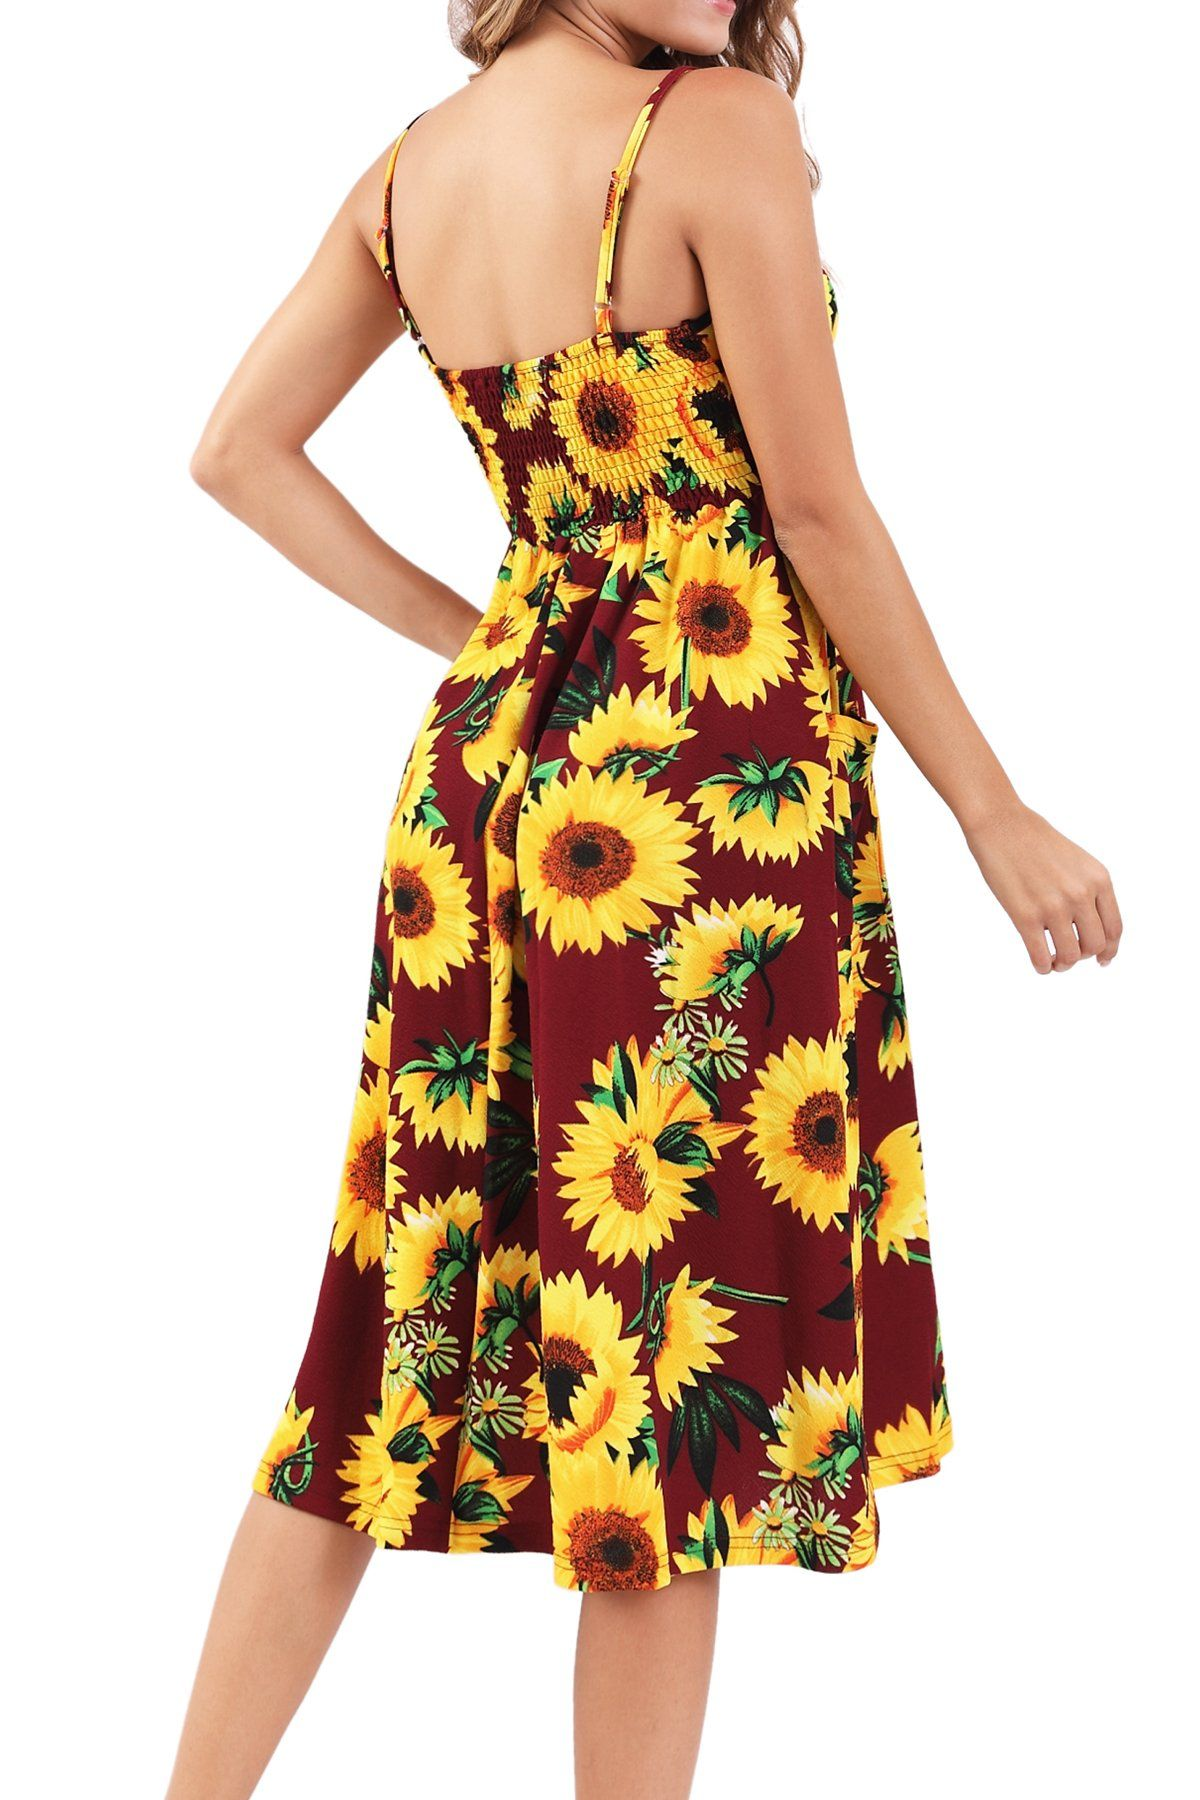 Bzonly Womens Floral Dresses Summer Spaghetti Strap Button Down Midi Dress With Pockets Details Can Be F Womens Floral Dress Floral Dress Summer Pocket Dress [ 1800 x 1200 Pixel ]